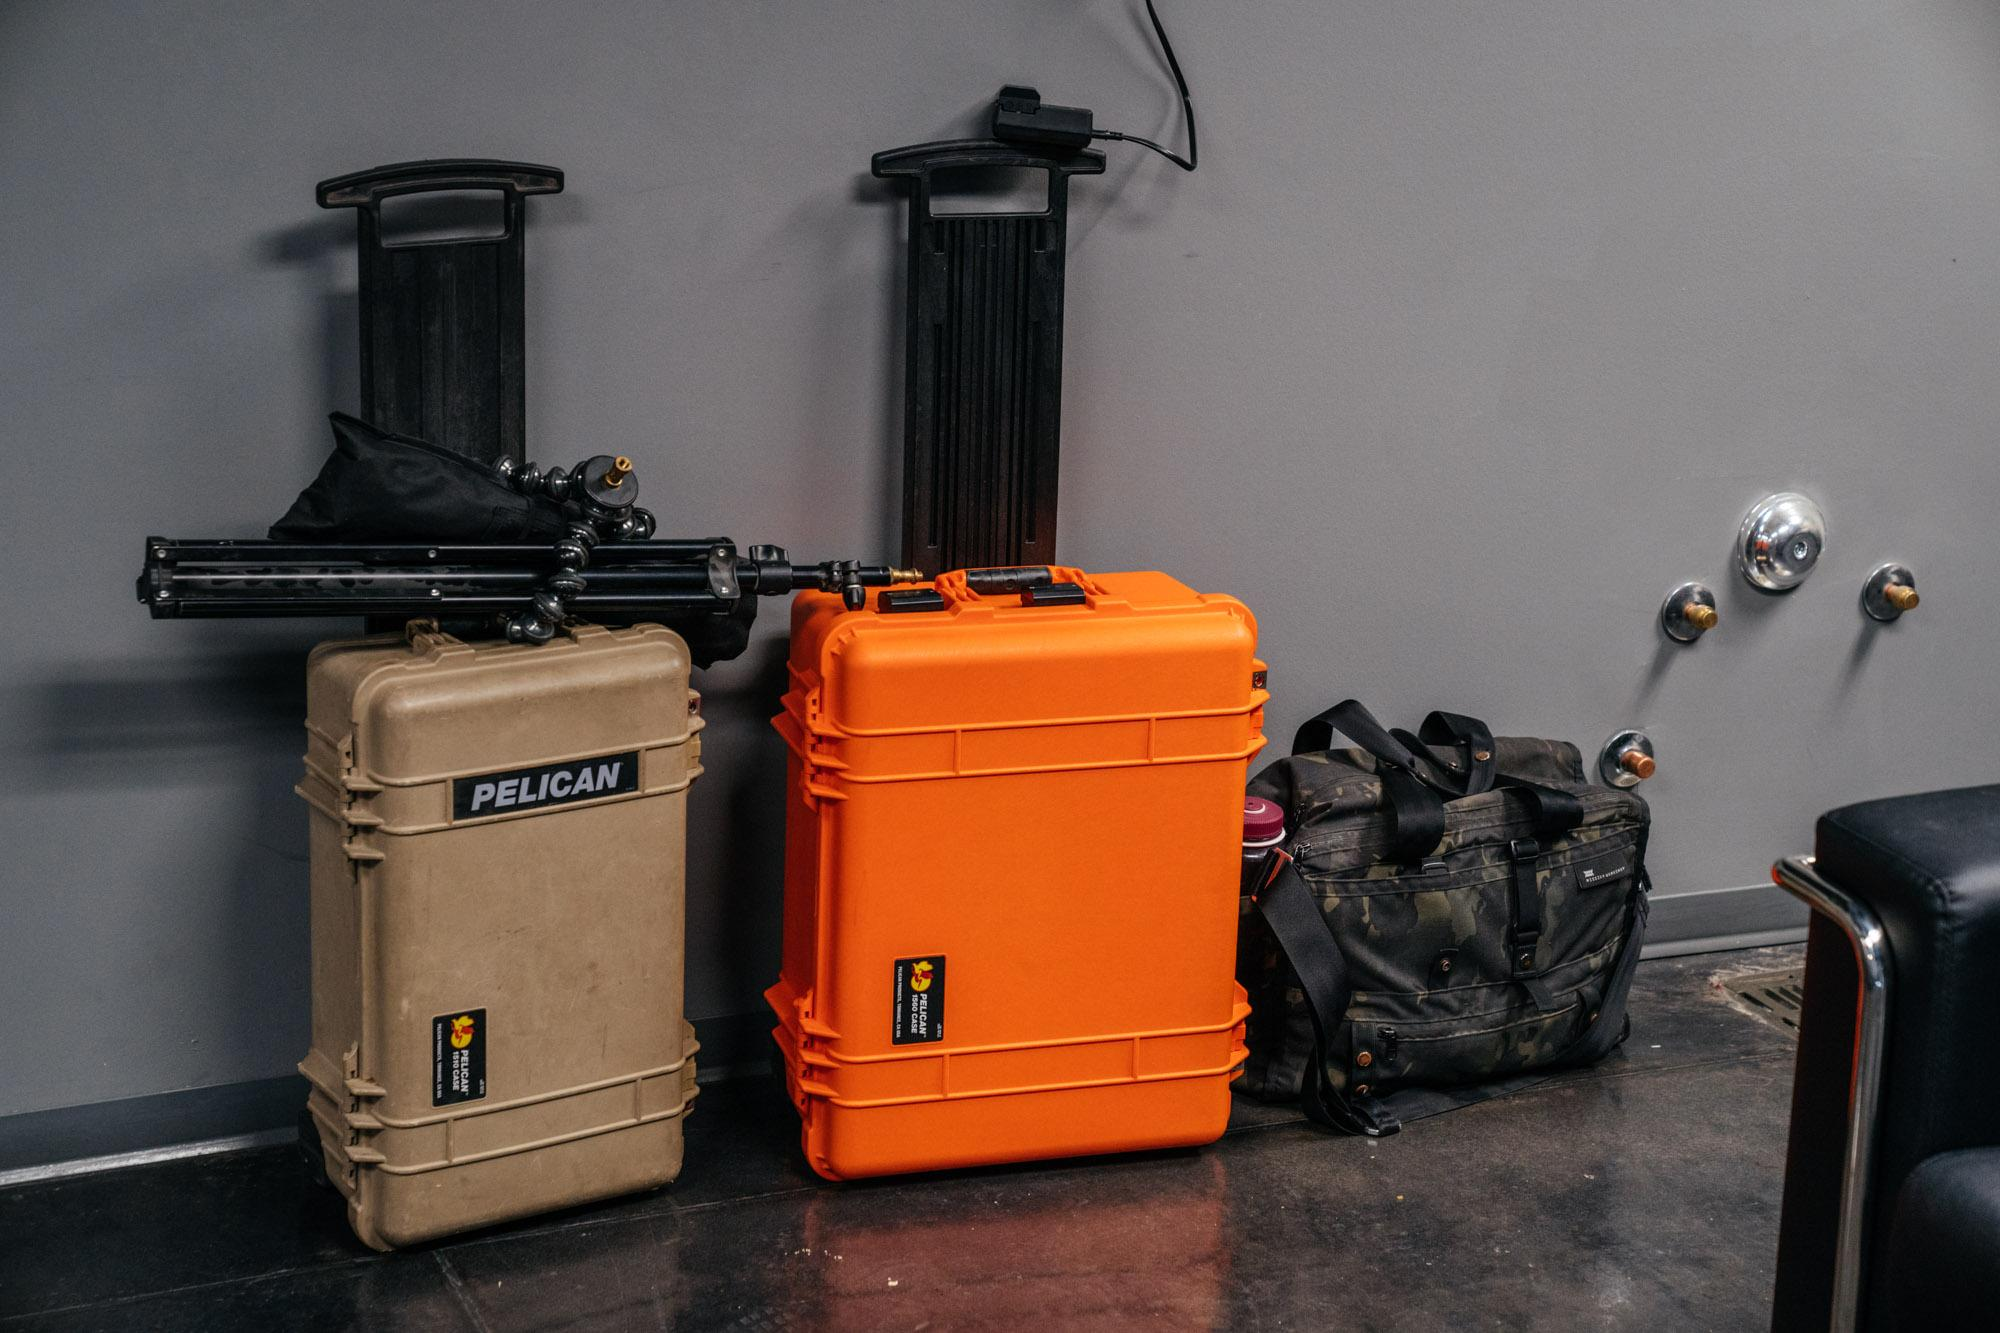 My lighting setup all packed up...